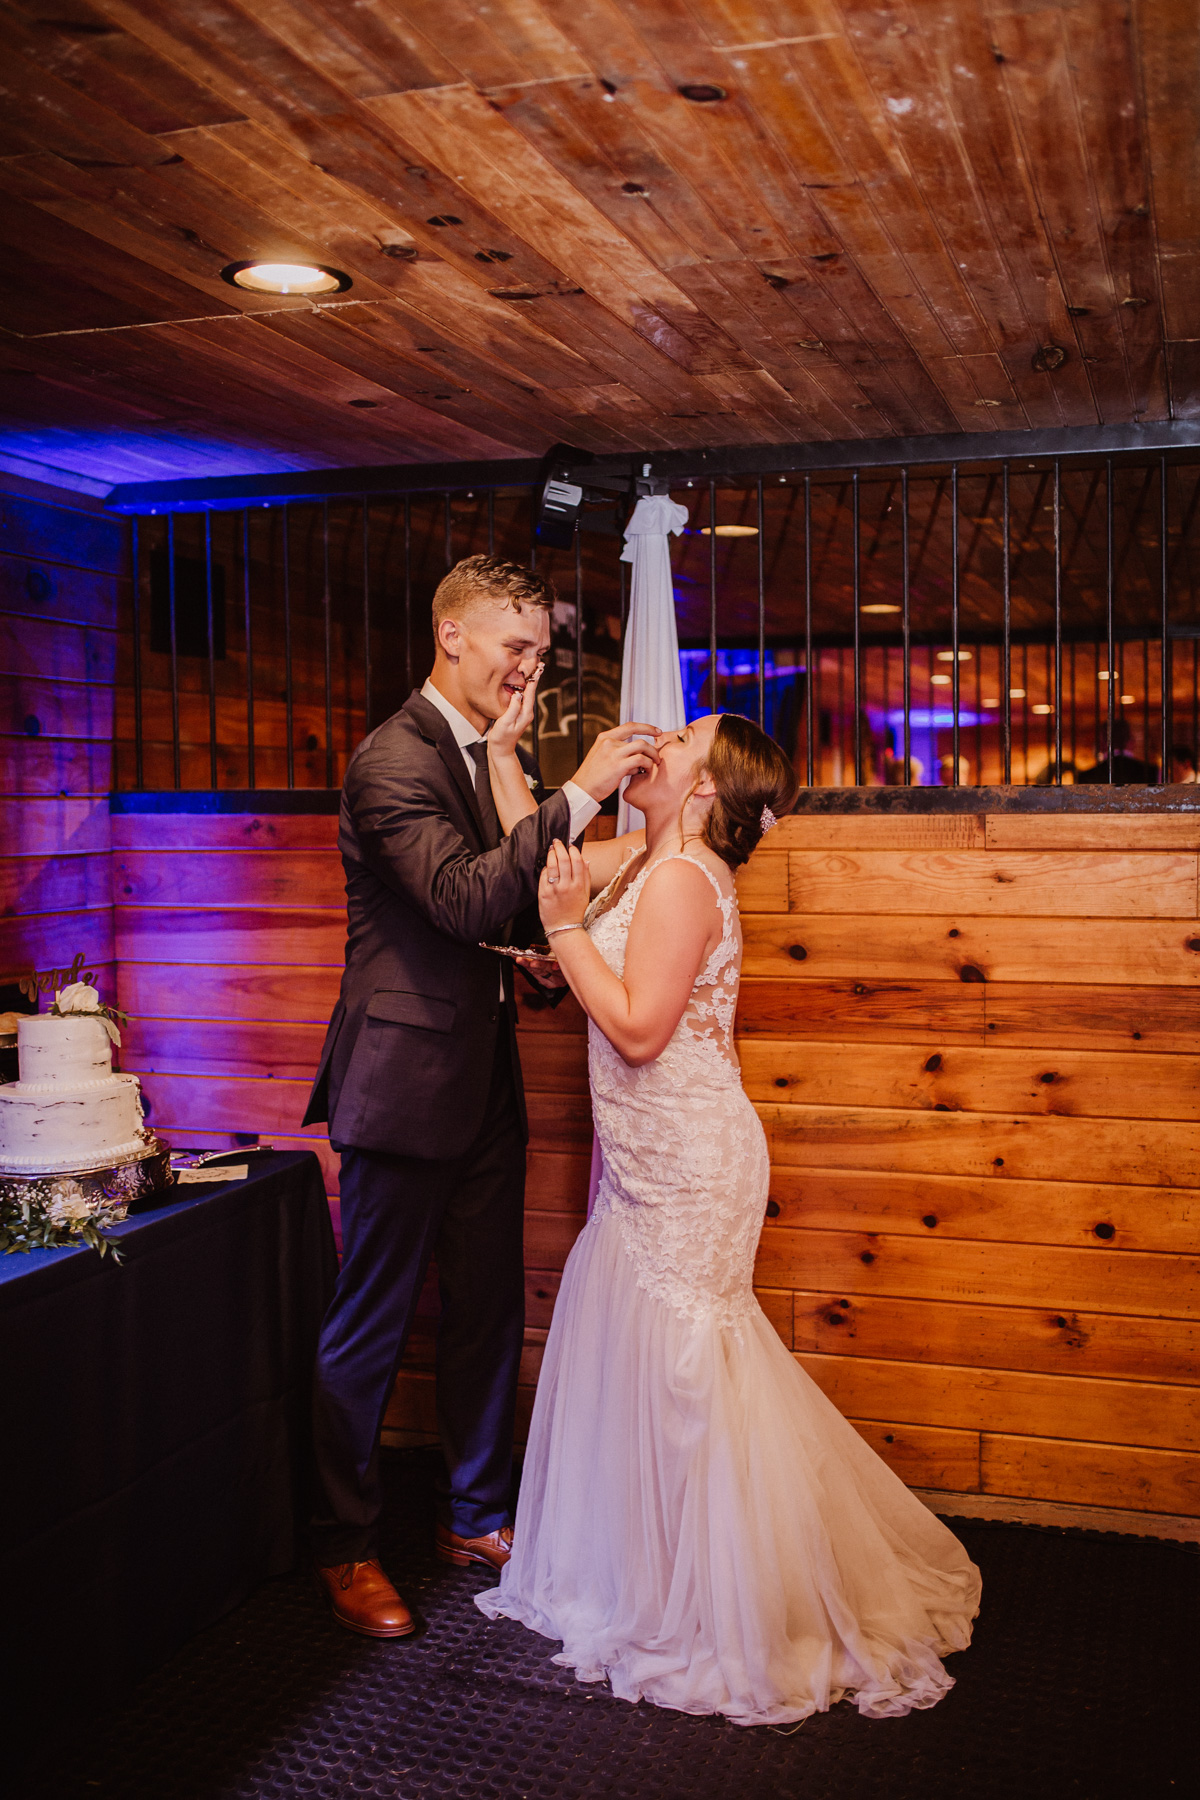 Cake cutting and dessert table at Millikan Farms wedding | Kayli LaFon Photography